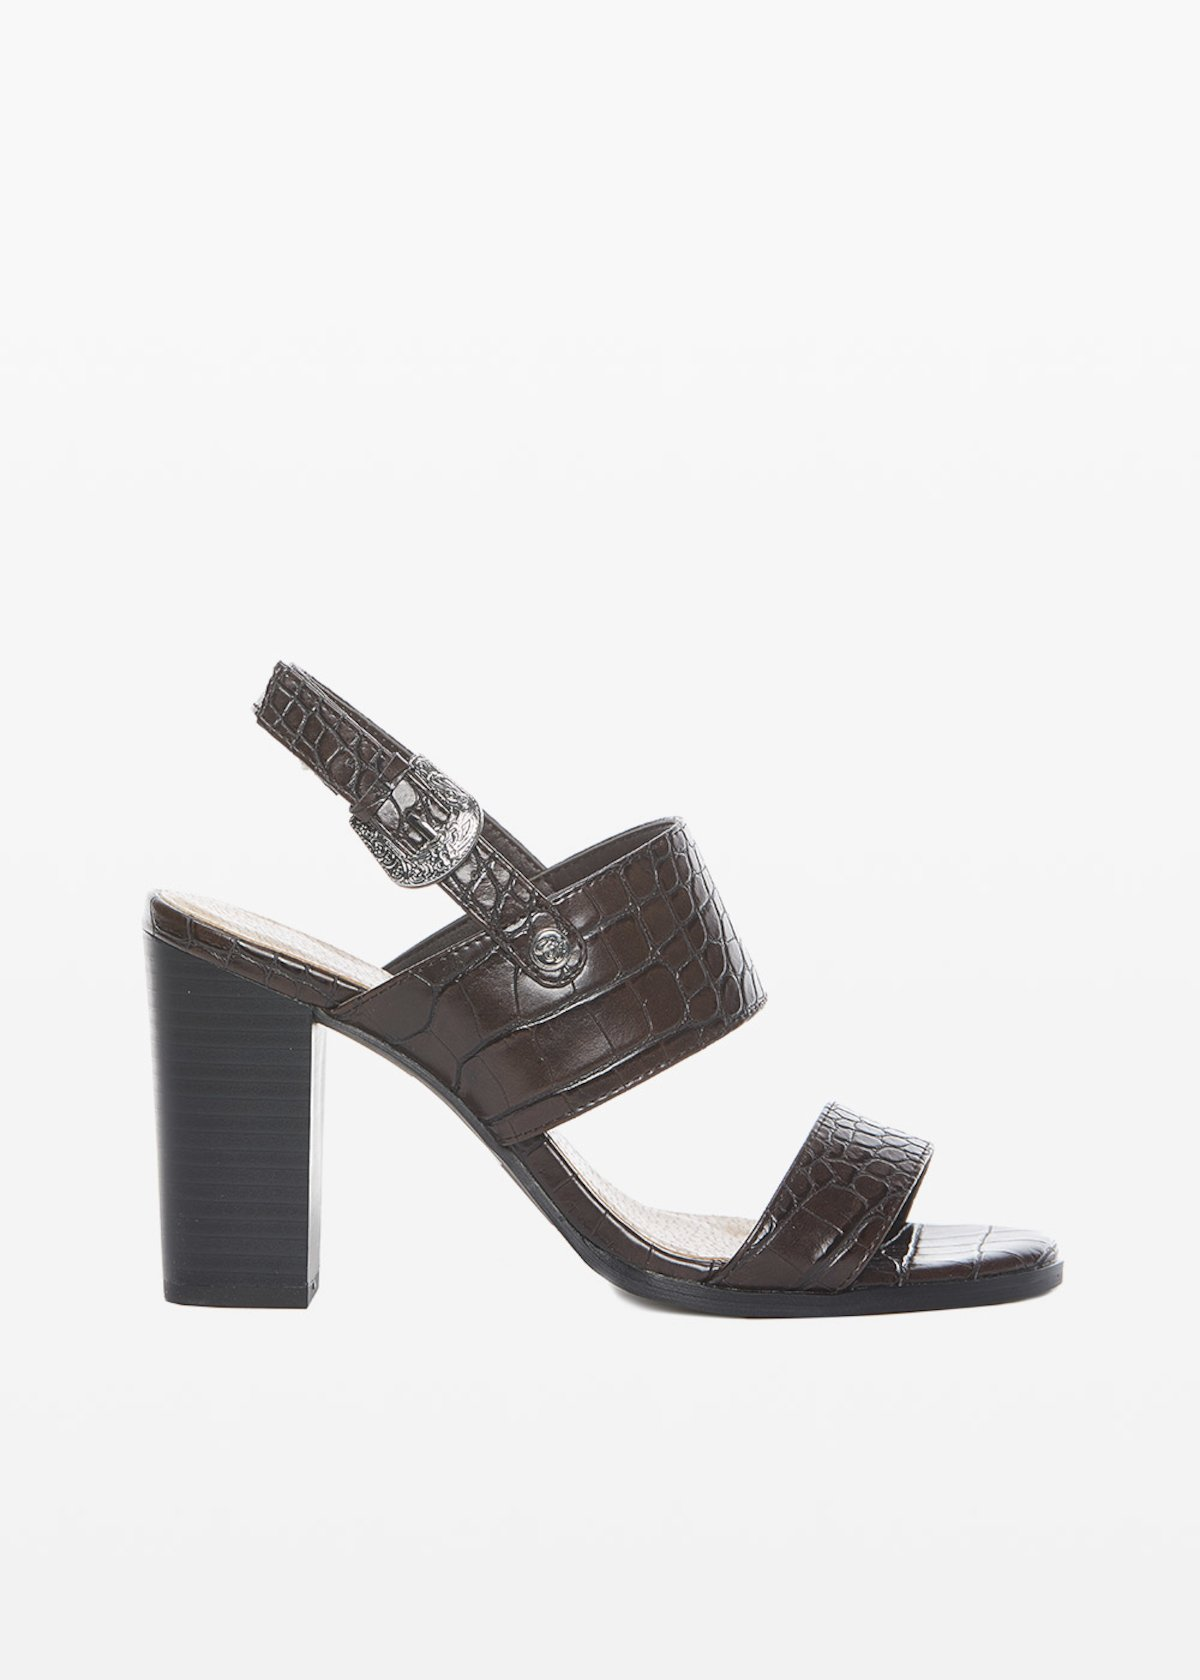 Sael sandals crocodile effect - Crosta - Woman - Category image